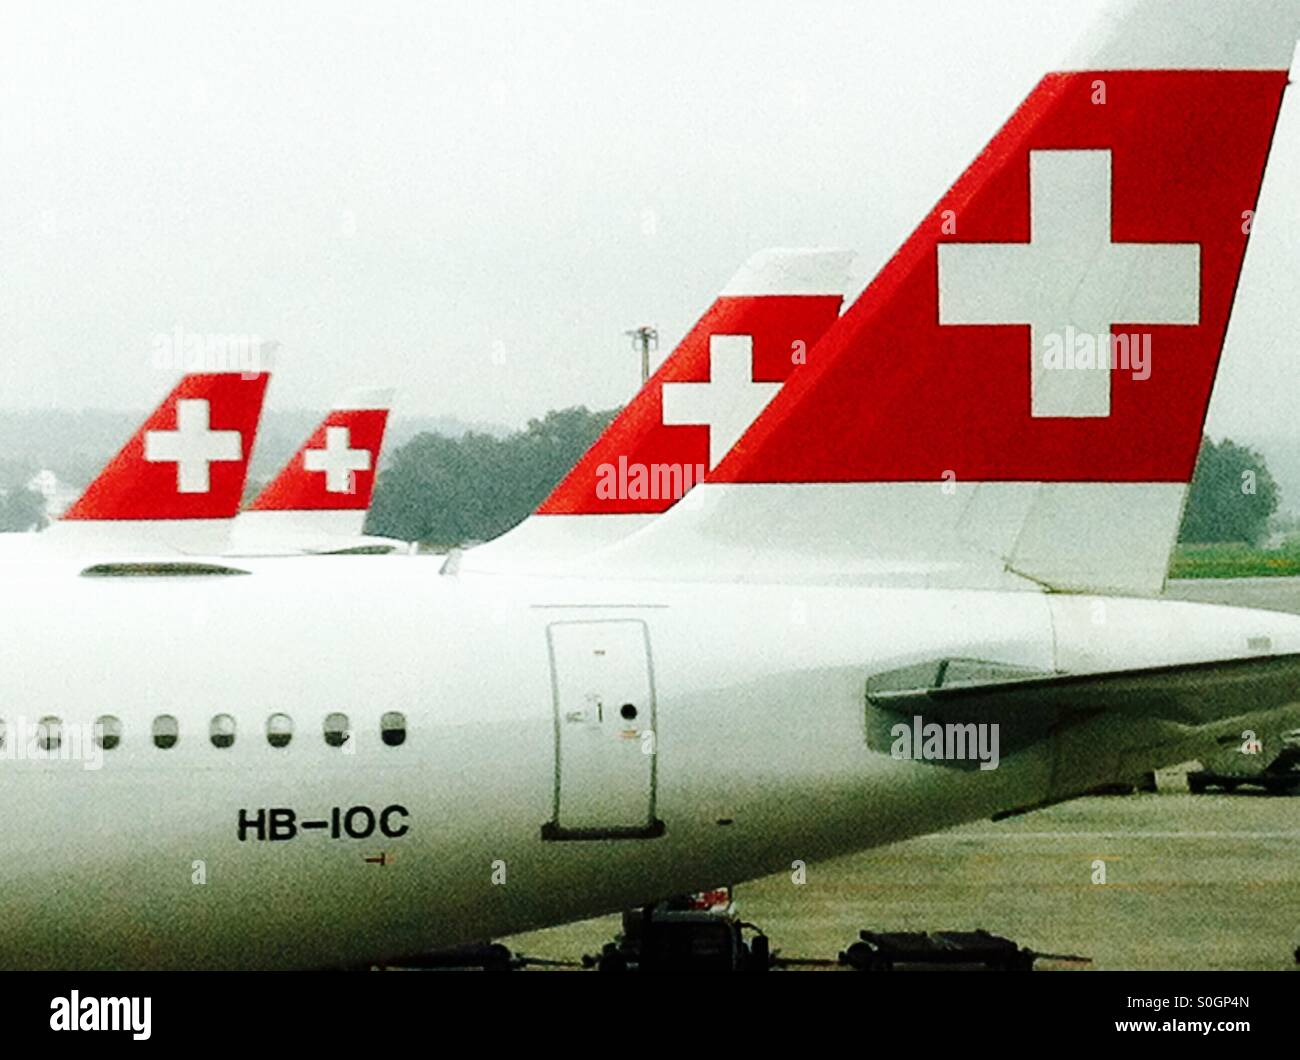 Four aeroplanes in the swiss airport - Stock Image